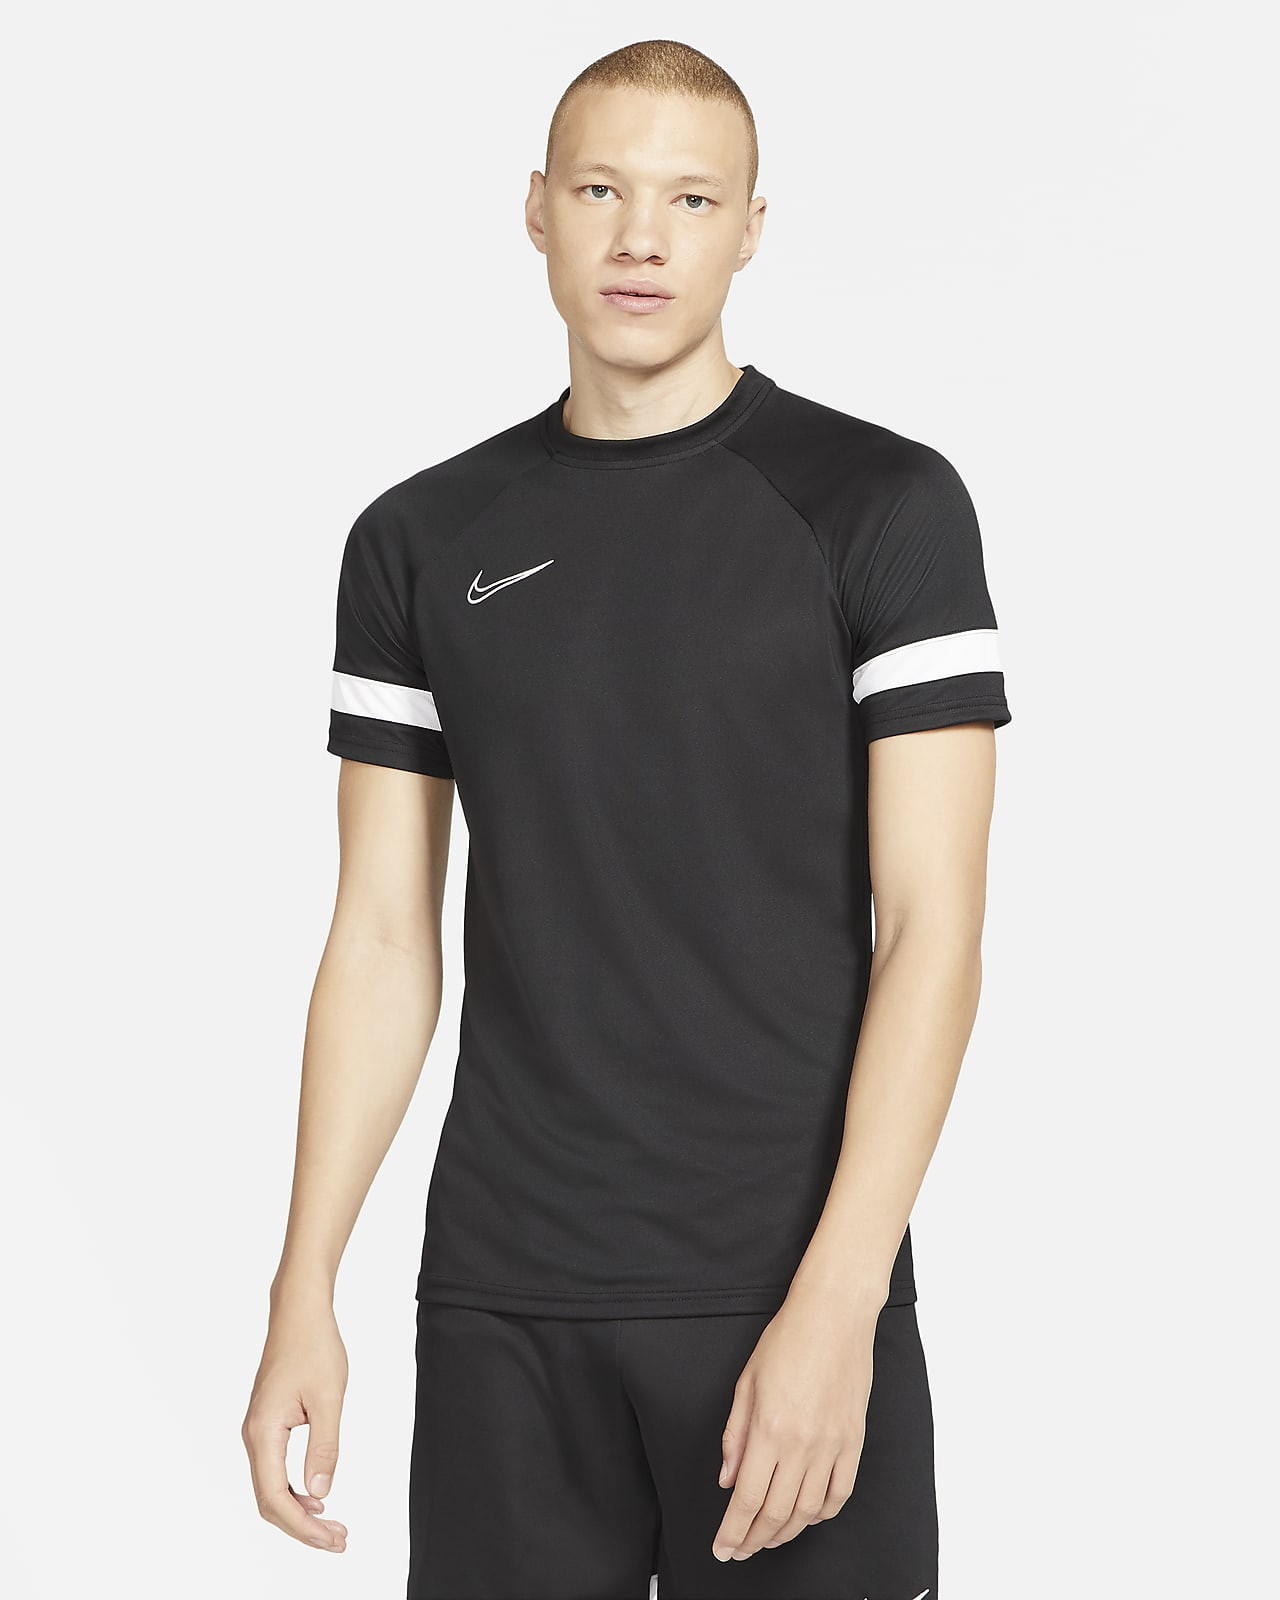 Nike Dri-FIT Academy Men's Short-Sleeve Soccer Top